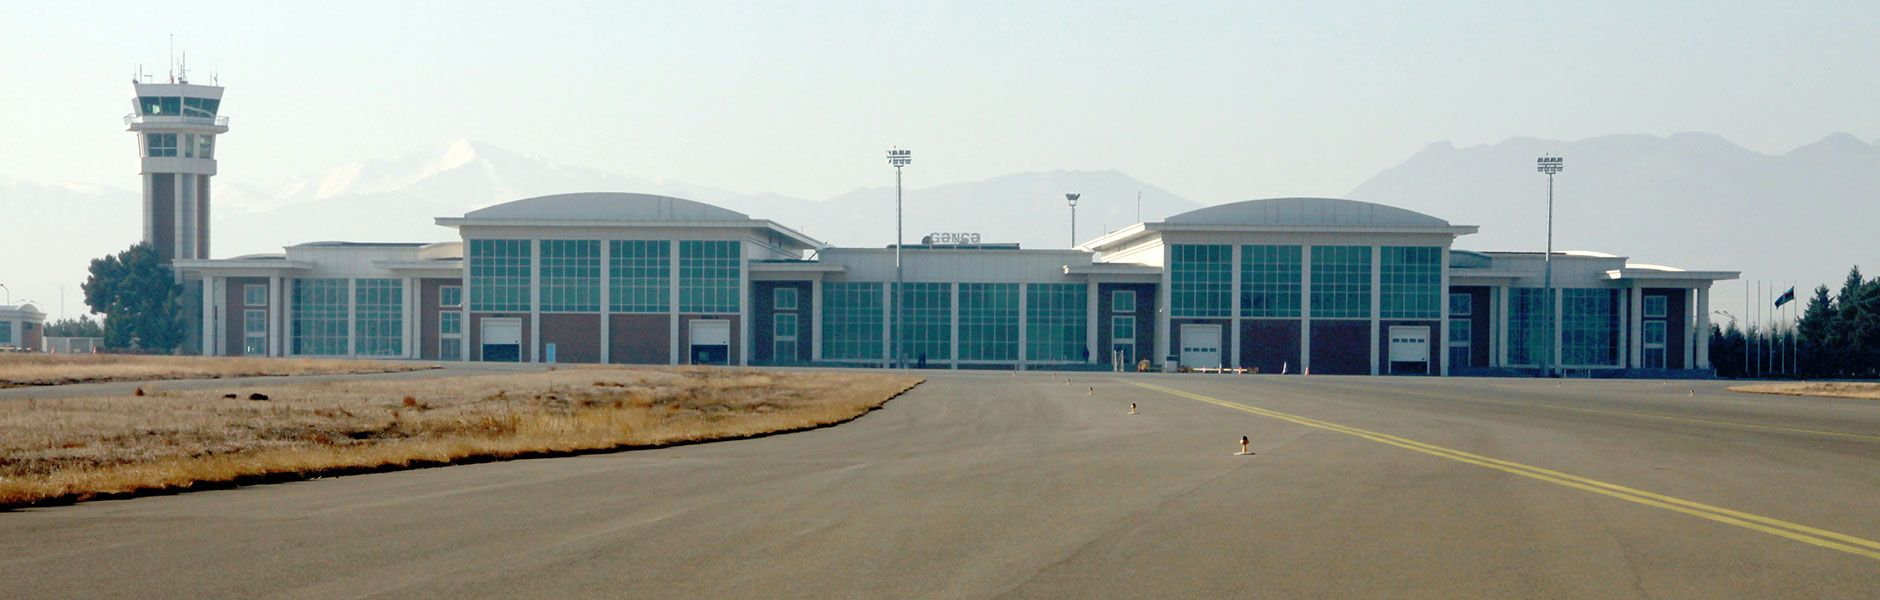 Reconstruction of runway, apron, taxiways and entrance road of Ganaja International Airport